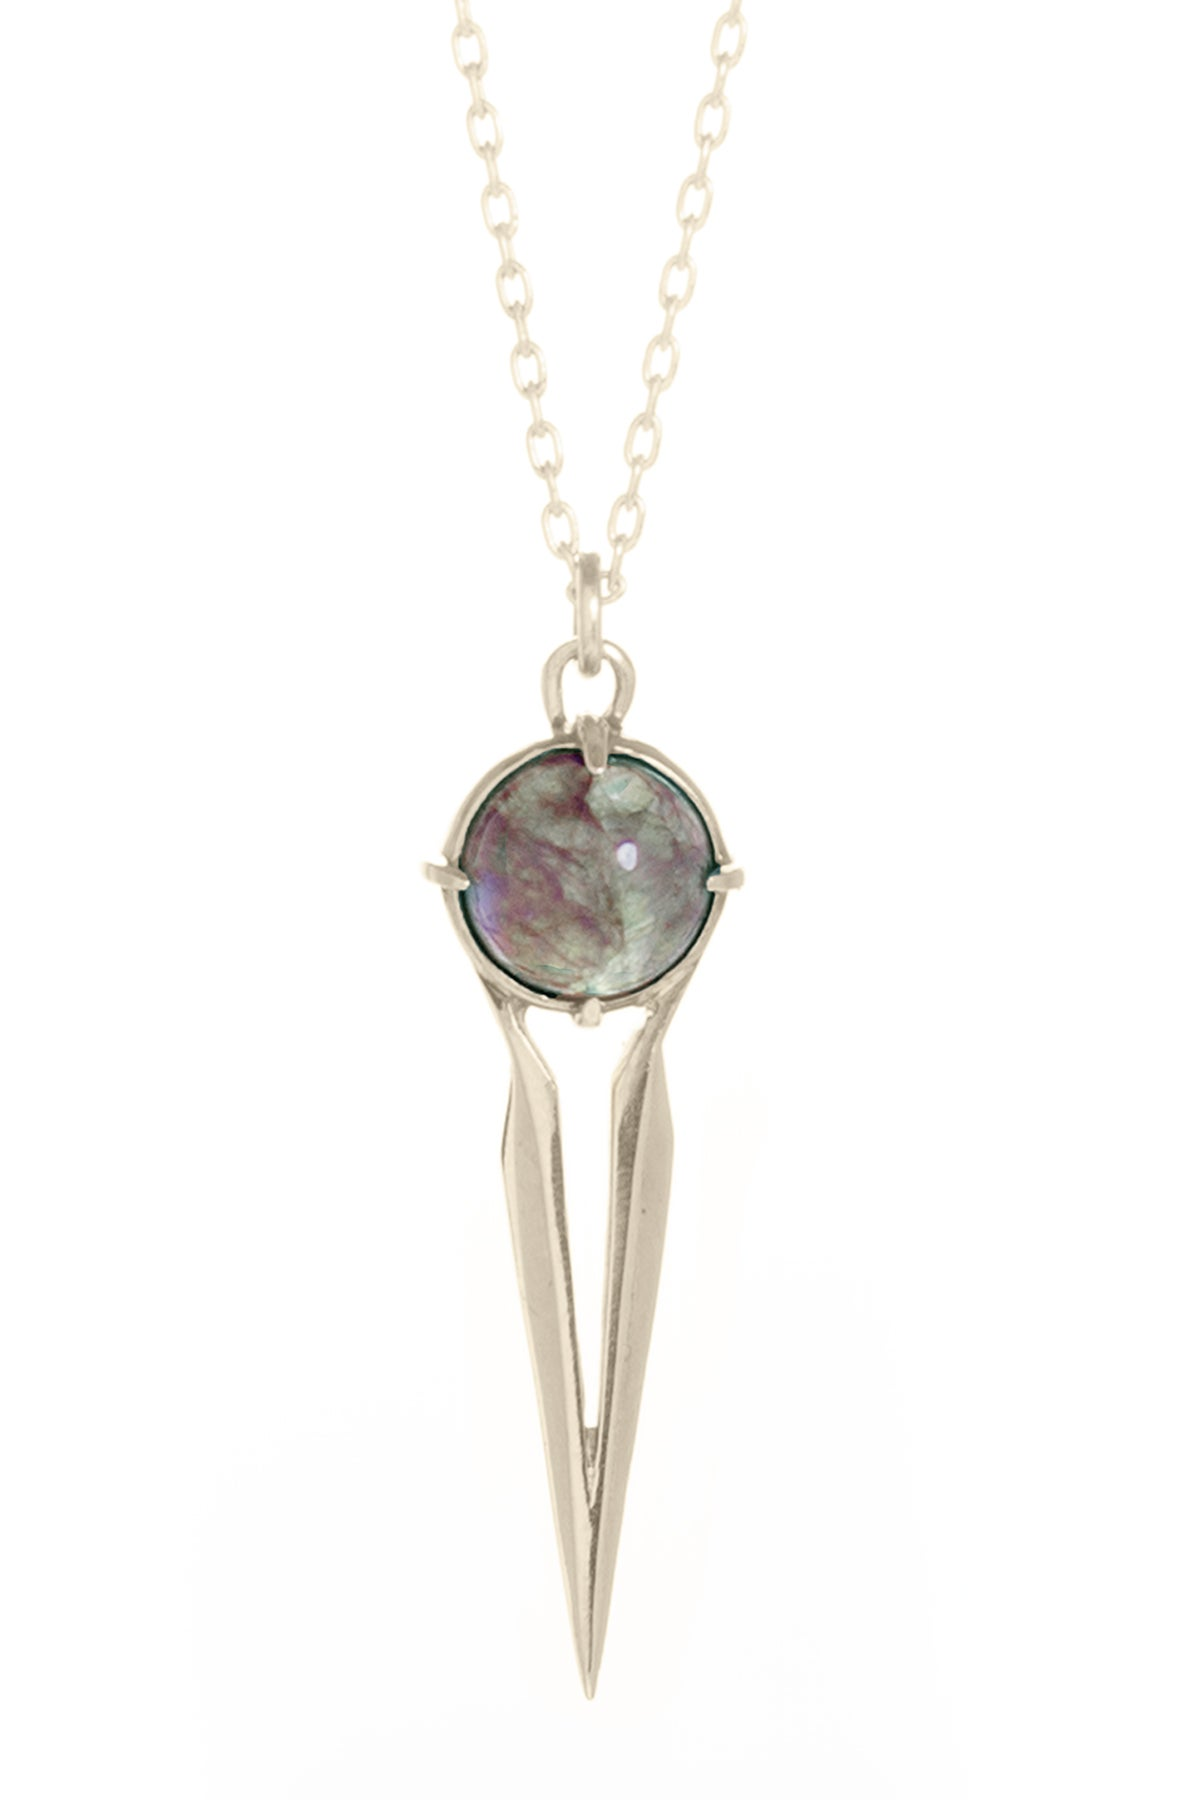 Image of LABRADORITE FALCON NECKLACE